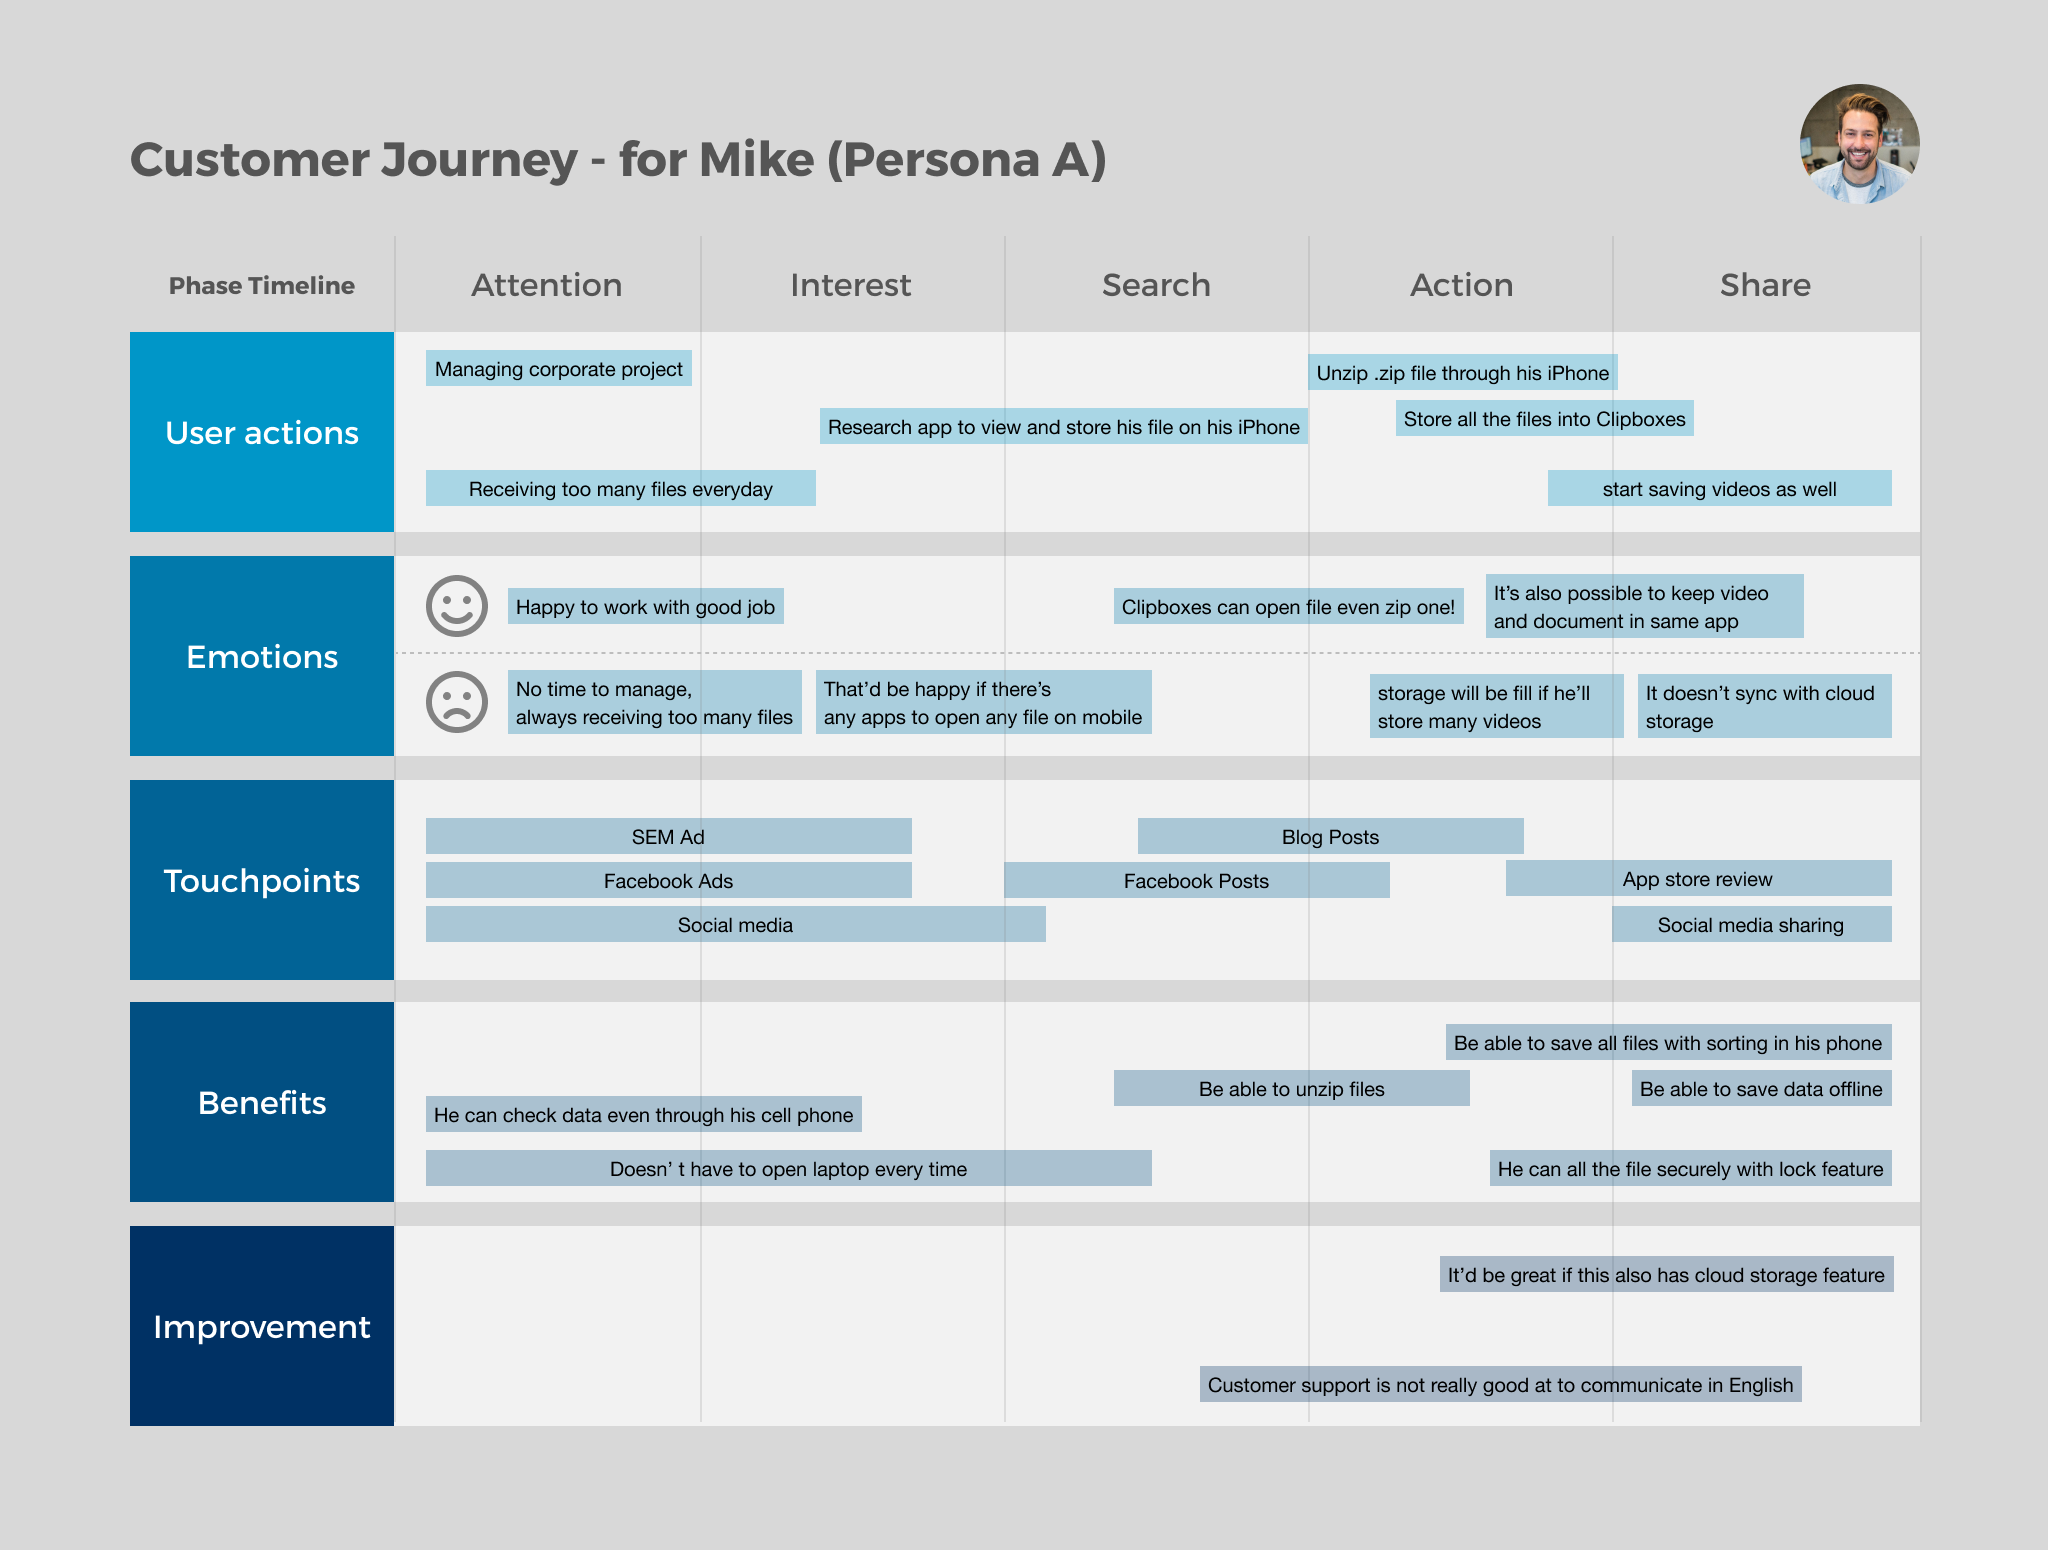 Customer Journey - Mike